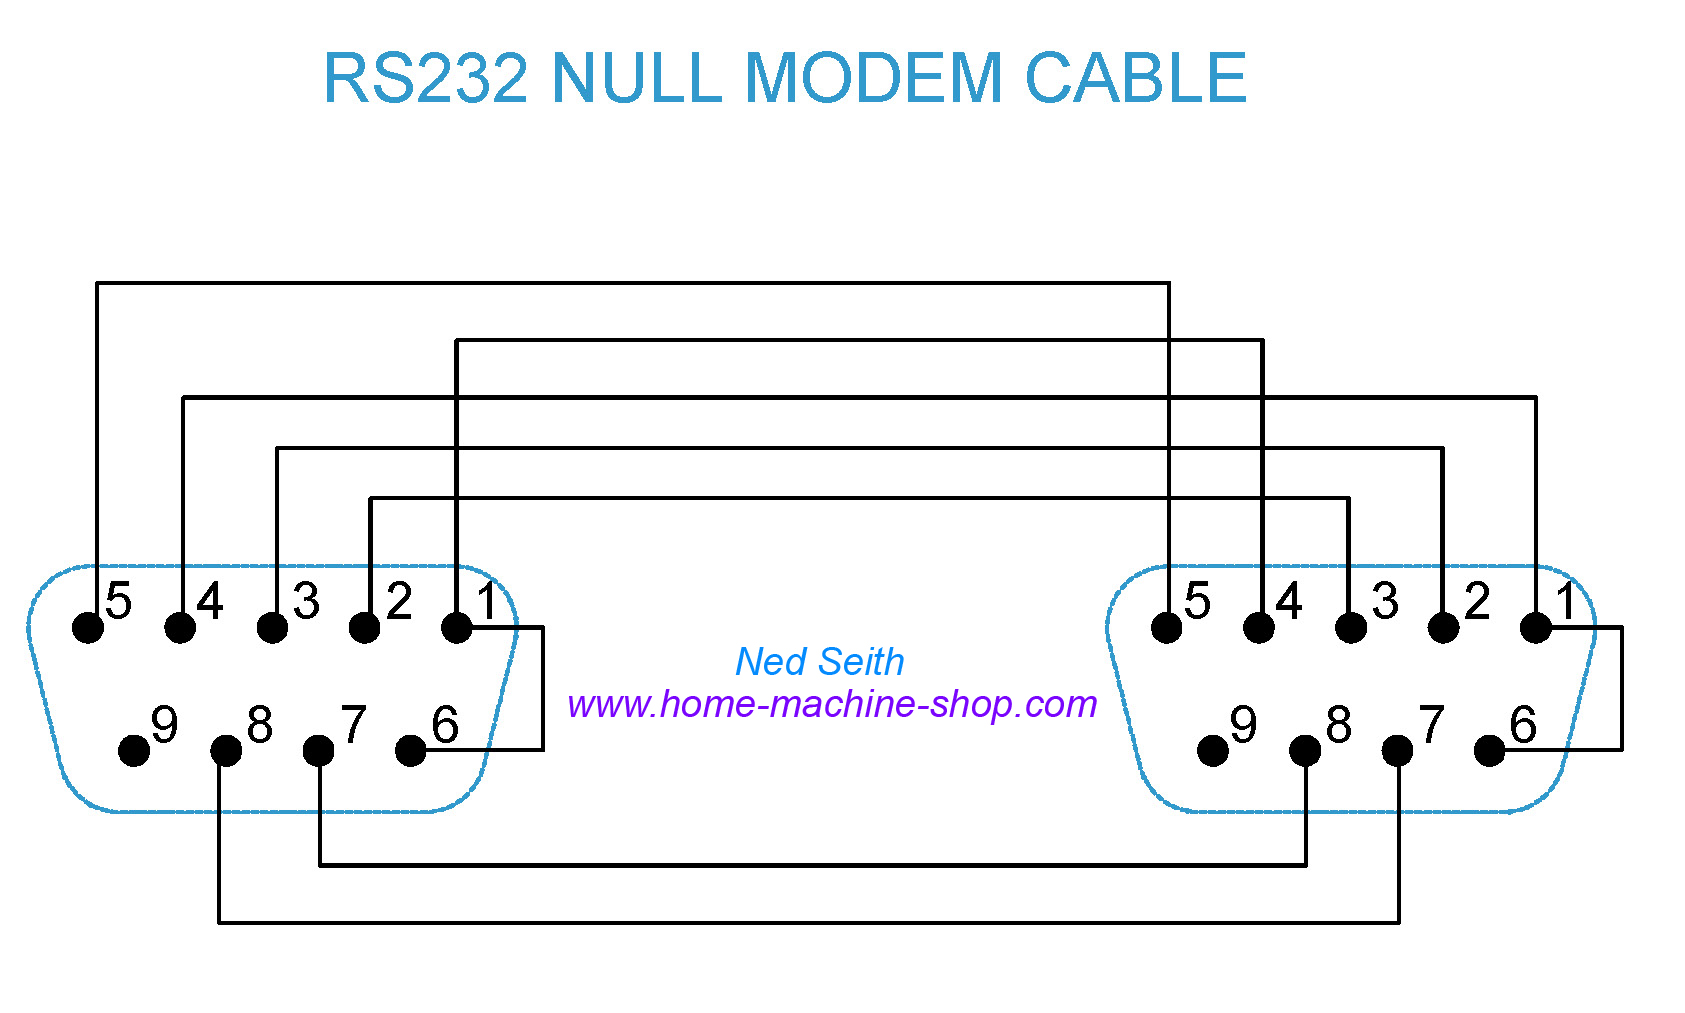 Swell Null Modem Cable Schematic Wiring Diagram Wiring Cloud Brecesaoduqqnet